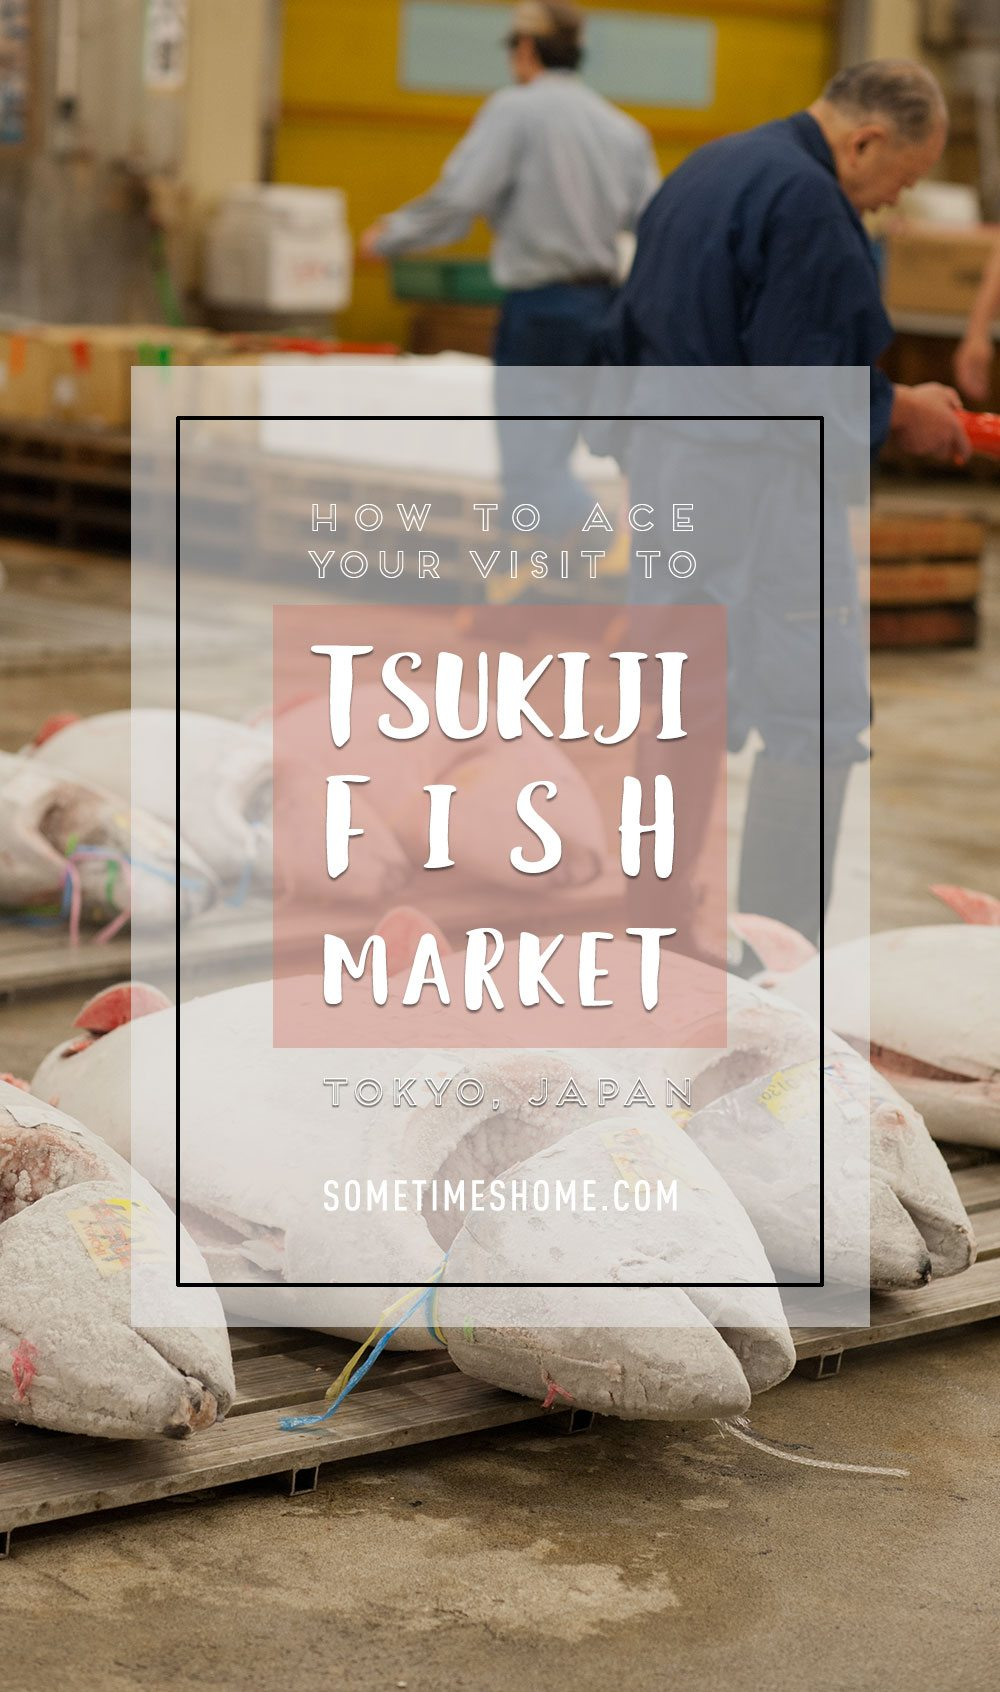 How to ace your visit to Tsukiji Fish Market in Tokyo, Japan on Sometimes Home travel blog. Tuna auction, tips, vendors and visit information with photos.